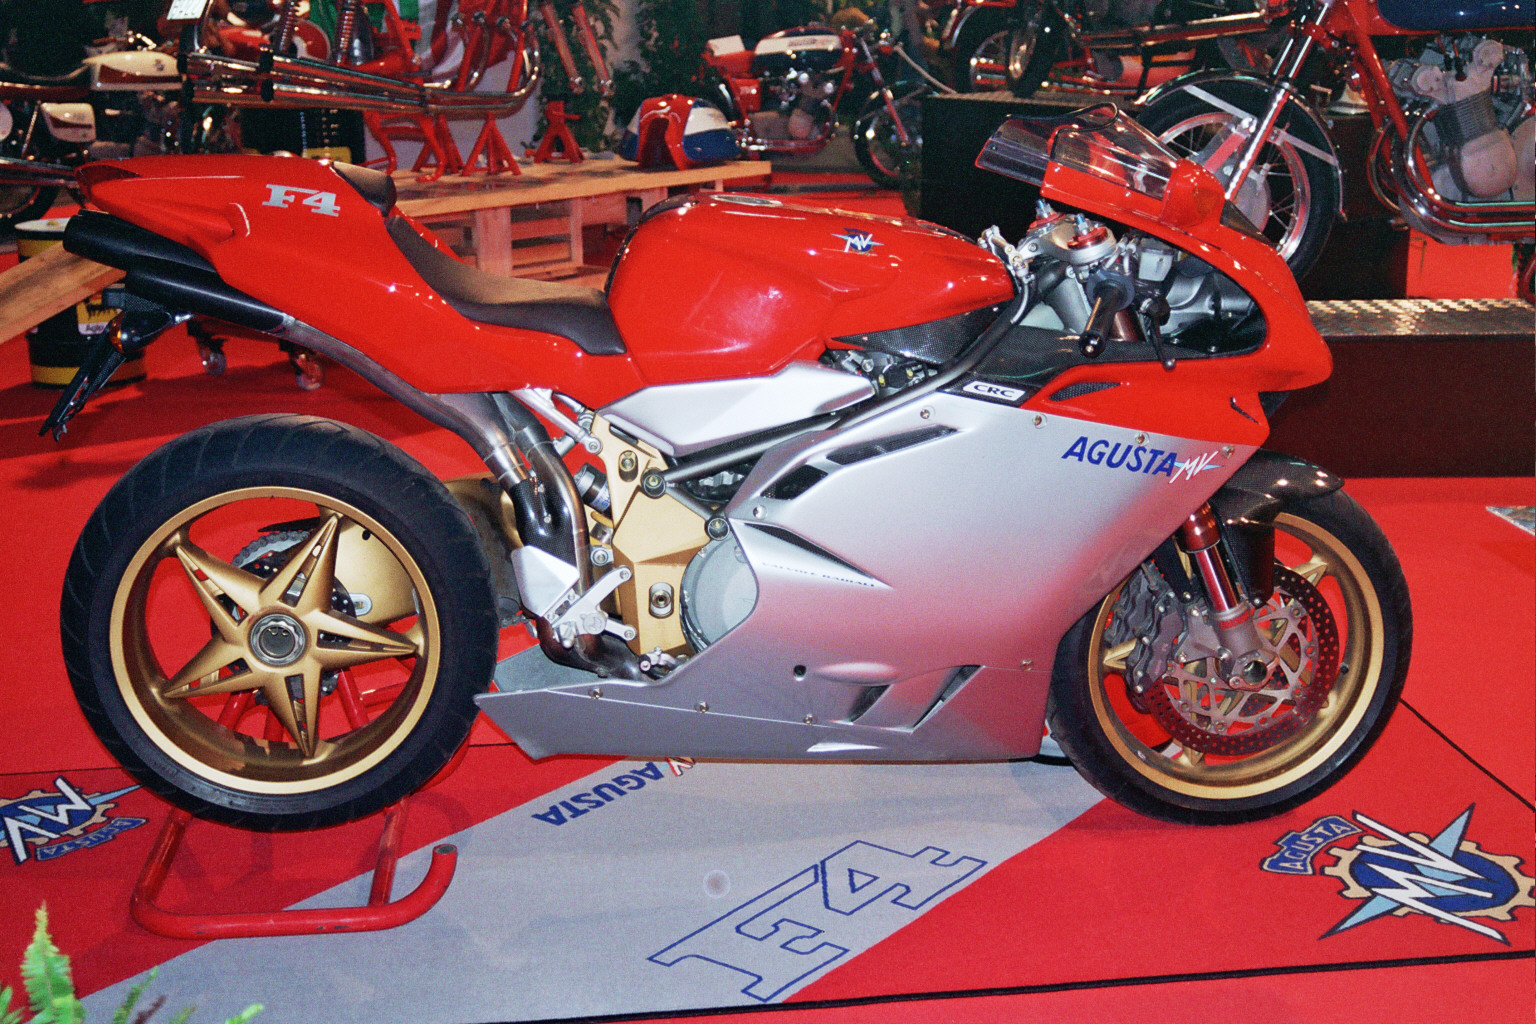 MV Agusta F4 750 Serie Oro 2003 images #113901